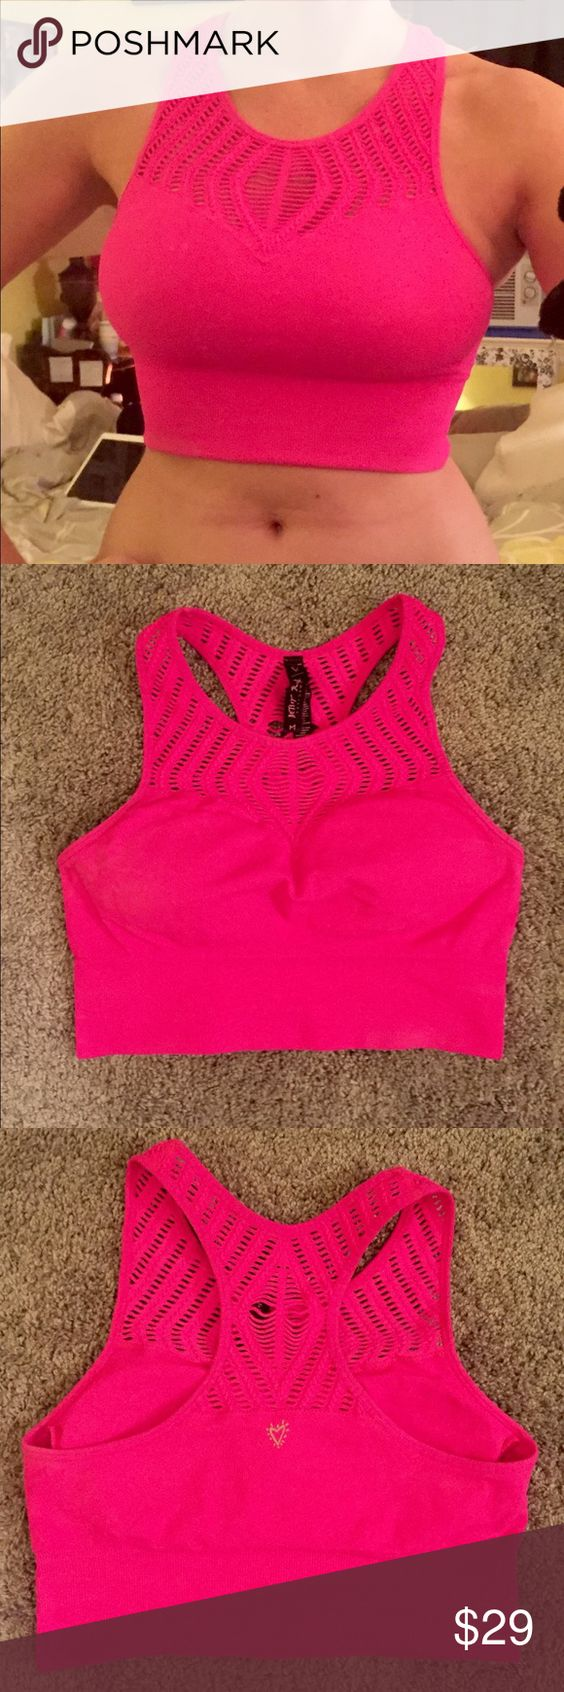 Betsey Johnson Performance Neon pink bra croptop Betsey Johnson Performance neon pink bra / bralette / sports bra / crop top / racerback with super cute and unique cut out pattern. Size medium with a lot of stretch and good support. Has removable pads. Worn around the house once or twice, in perfect condition. Retailed at $44. Betsey Johnson Intimates & Sleepwear Bras